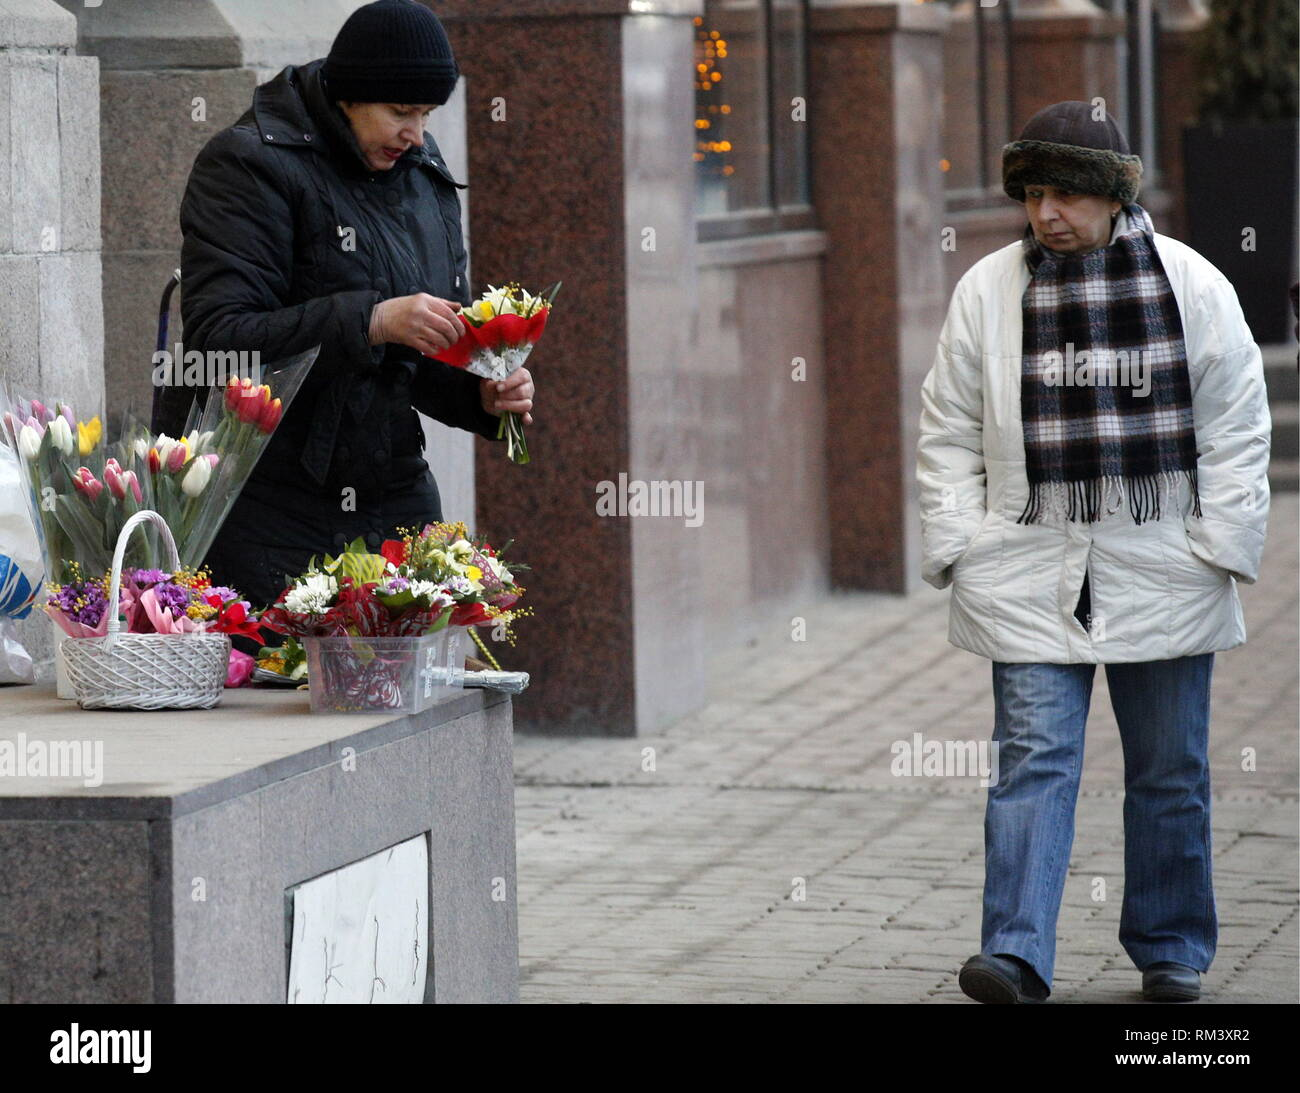 ROSTOV-ON-DON, RUSSIA - FEBRUARY 10, 2019: A woman selling flowers in a street. Valery Matytsin/TASS - Stock Image